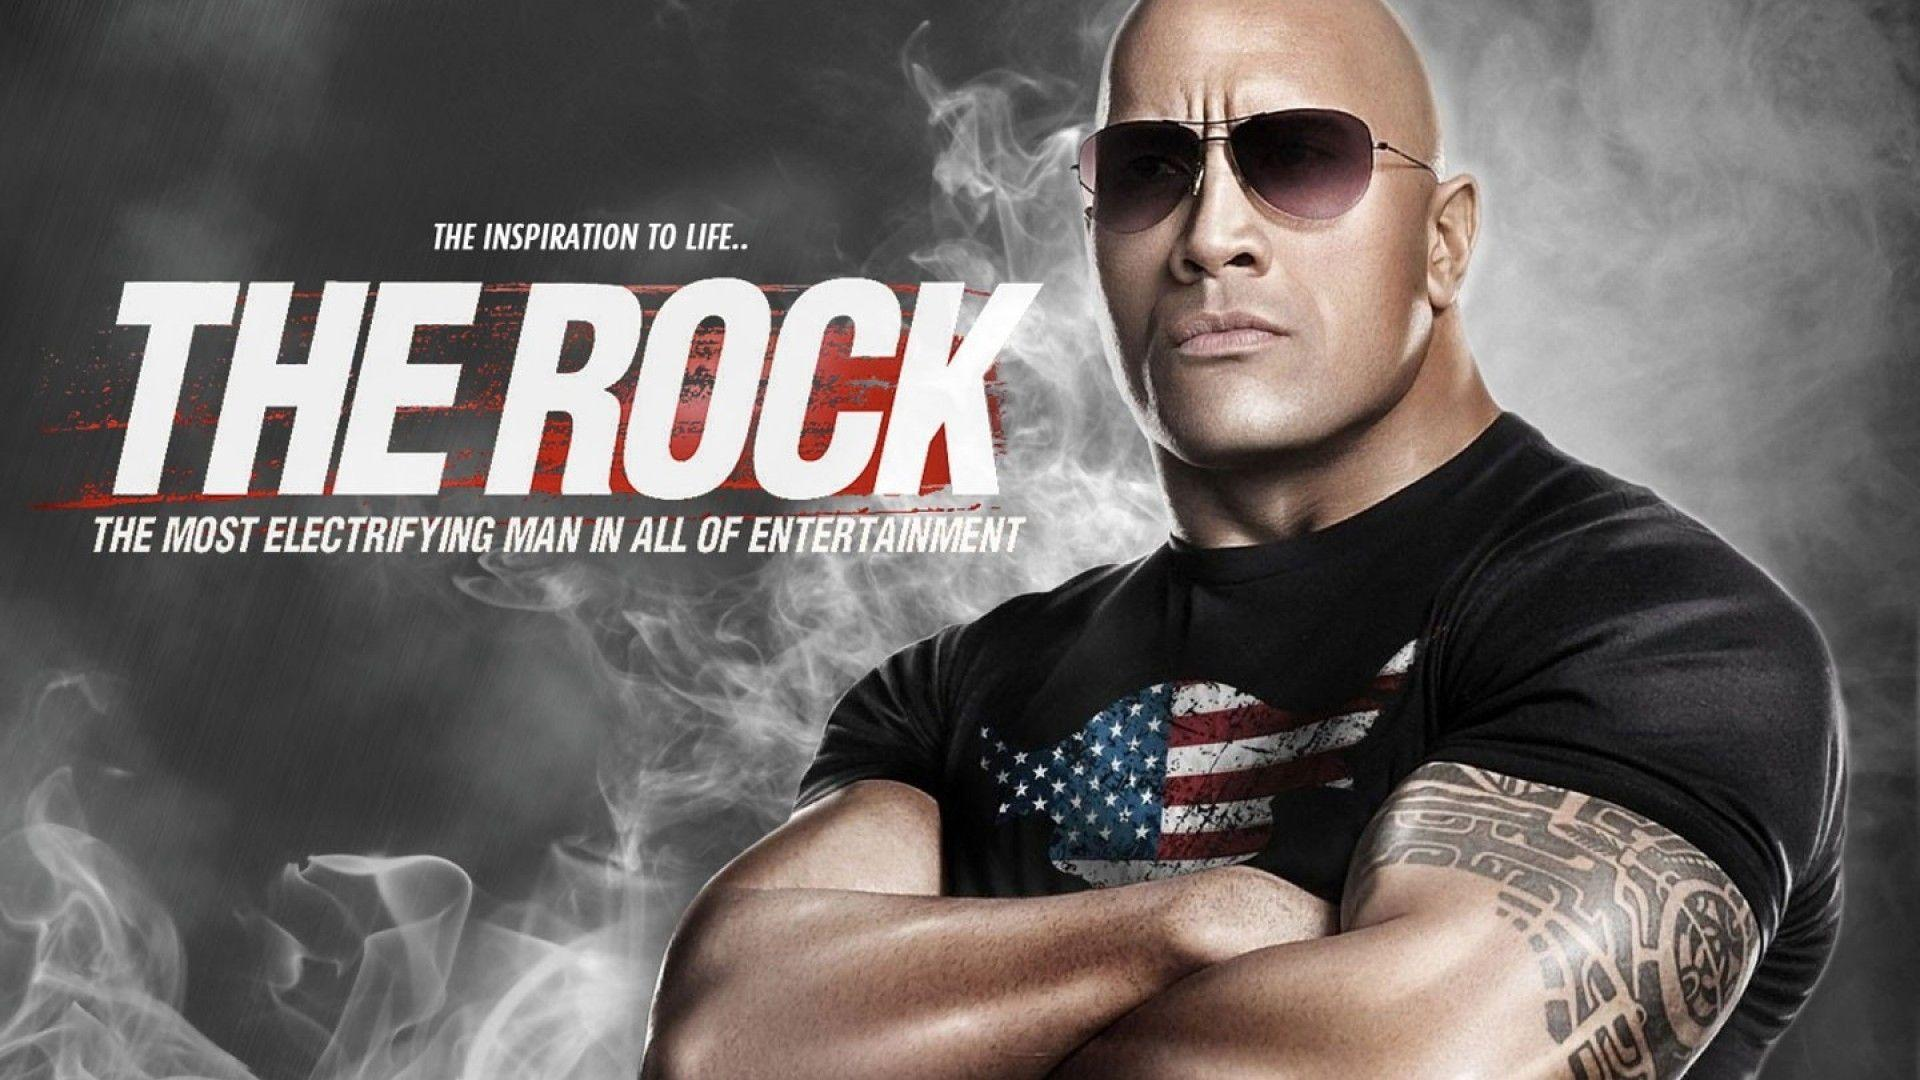 wwe rock wallpapers hd - wallpaper cave